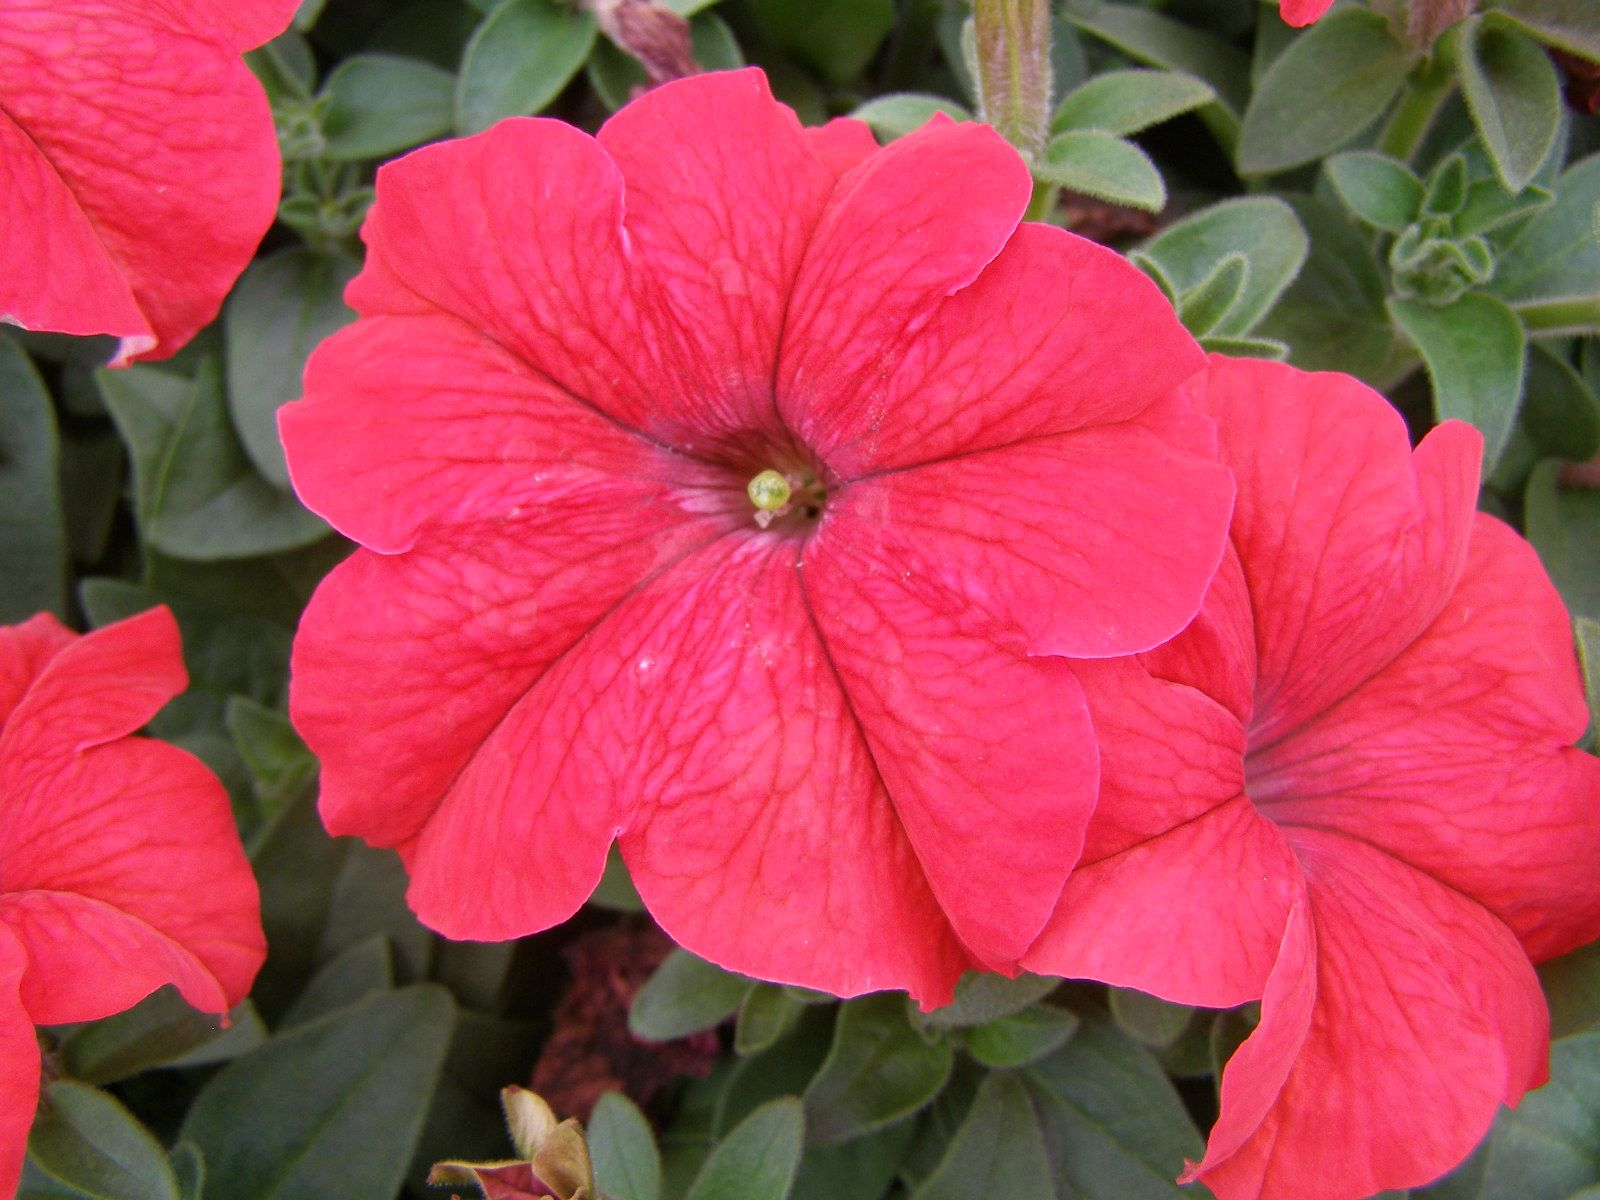 Petunia Dreams Red Google Search Petunias Plants Flower Seeds